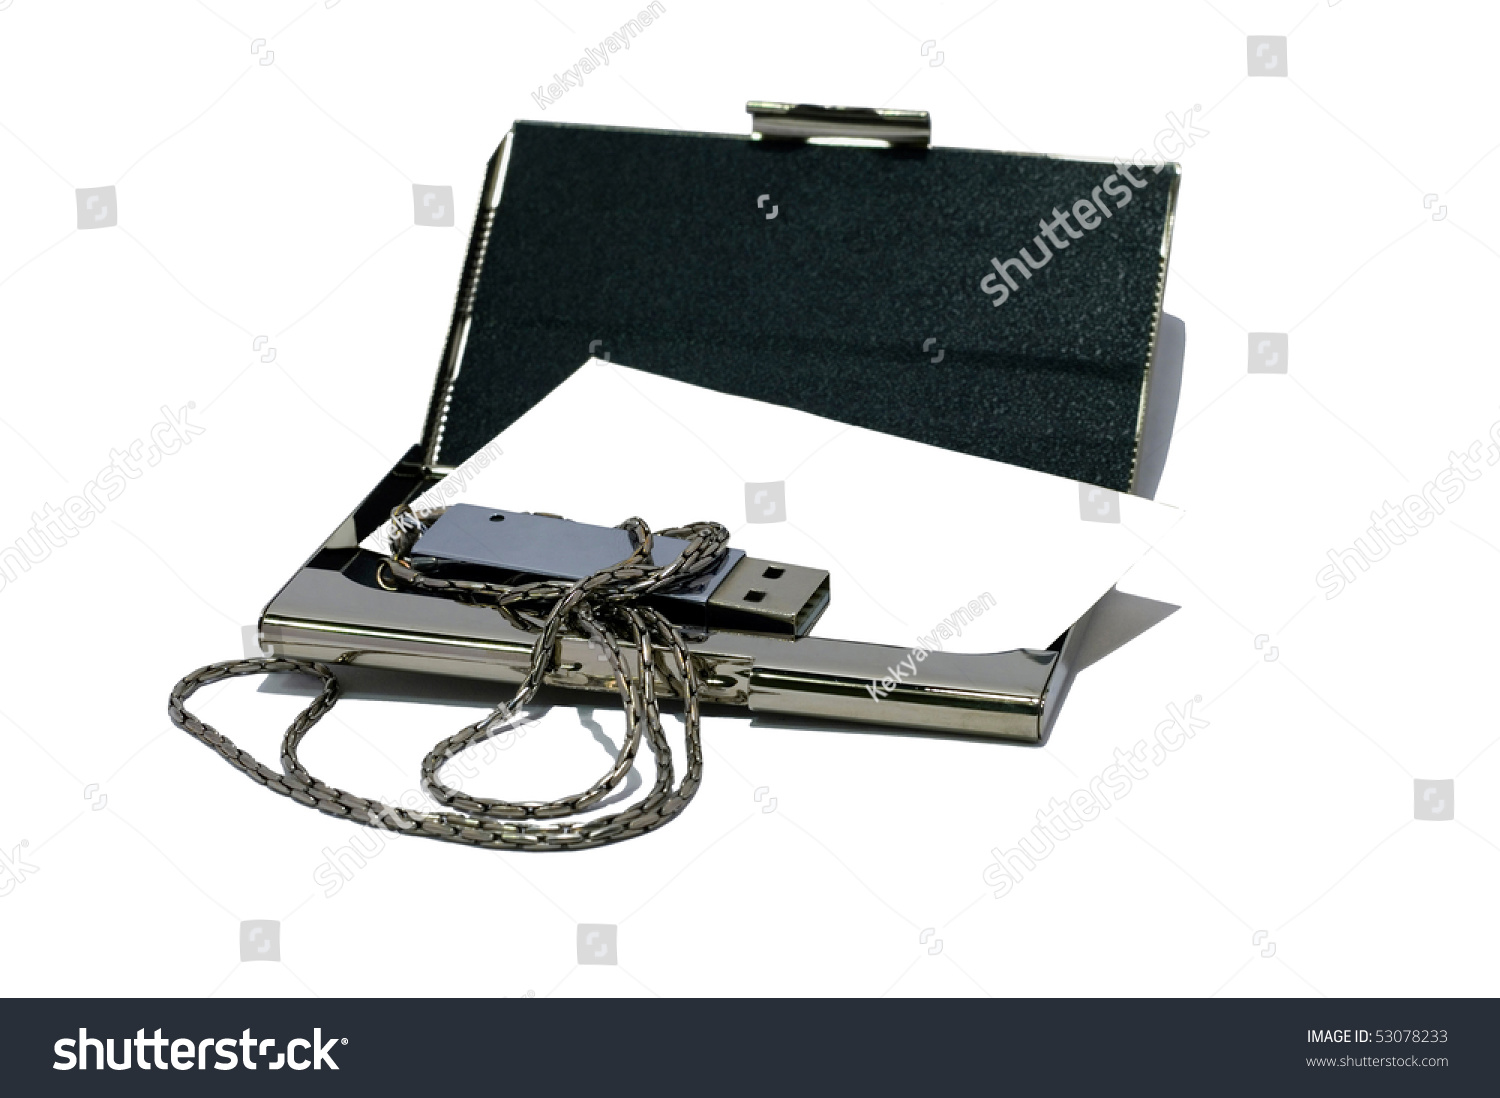 Stainless Business Card Holder Choice Image - Free Business Cards